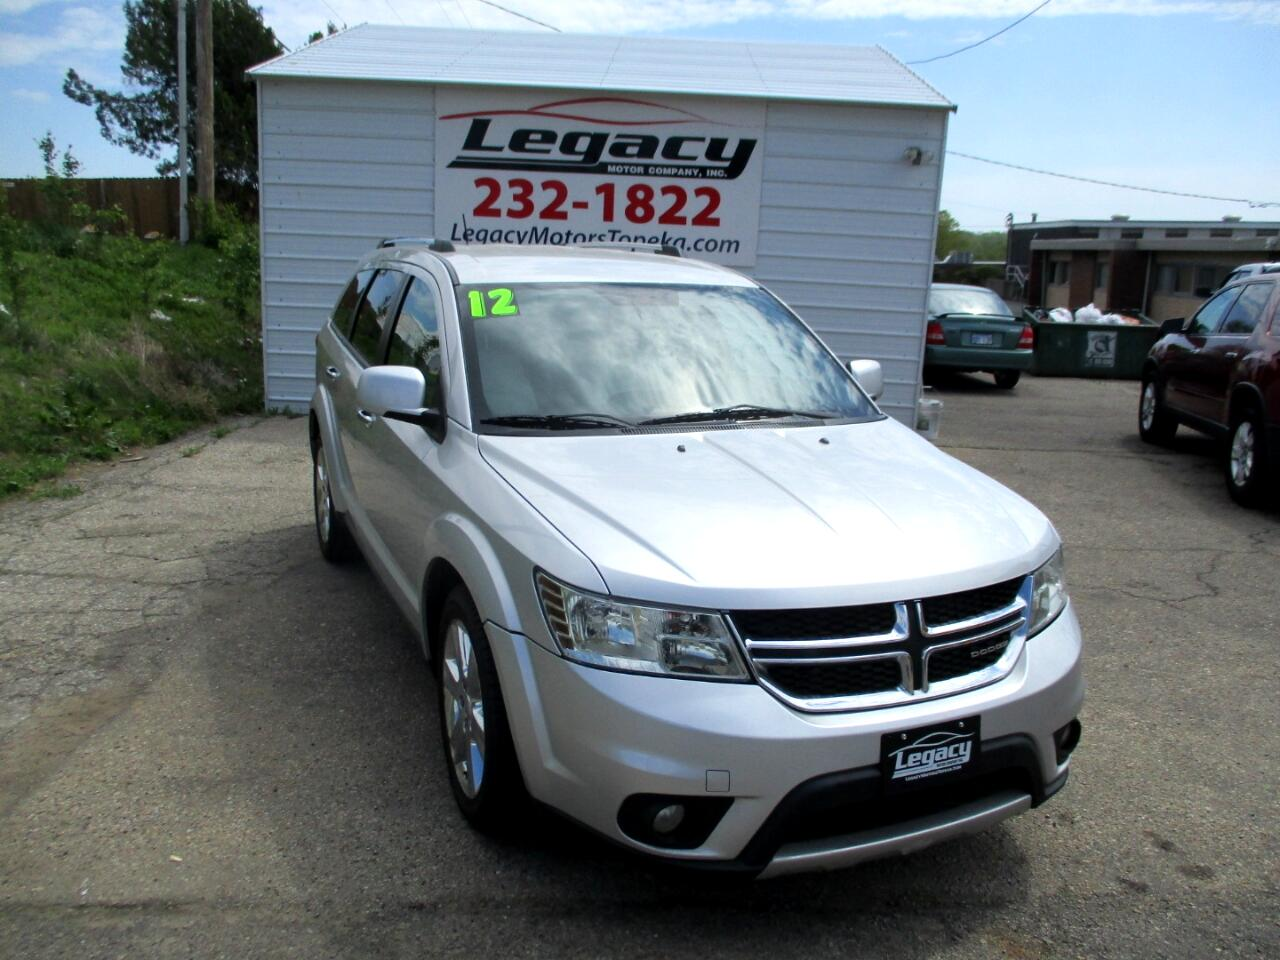 2012 Dodge Journey AWD 4dr Crew